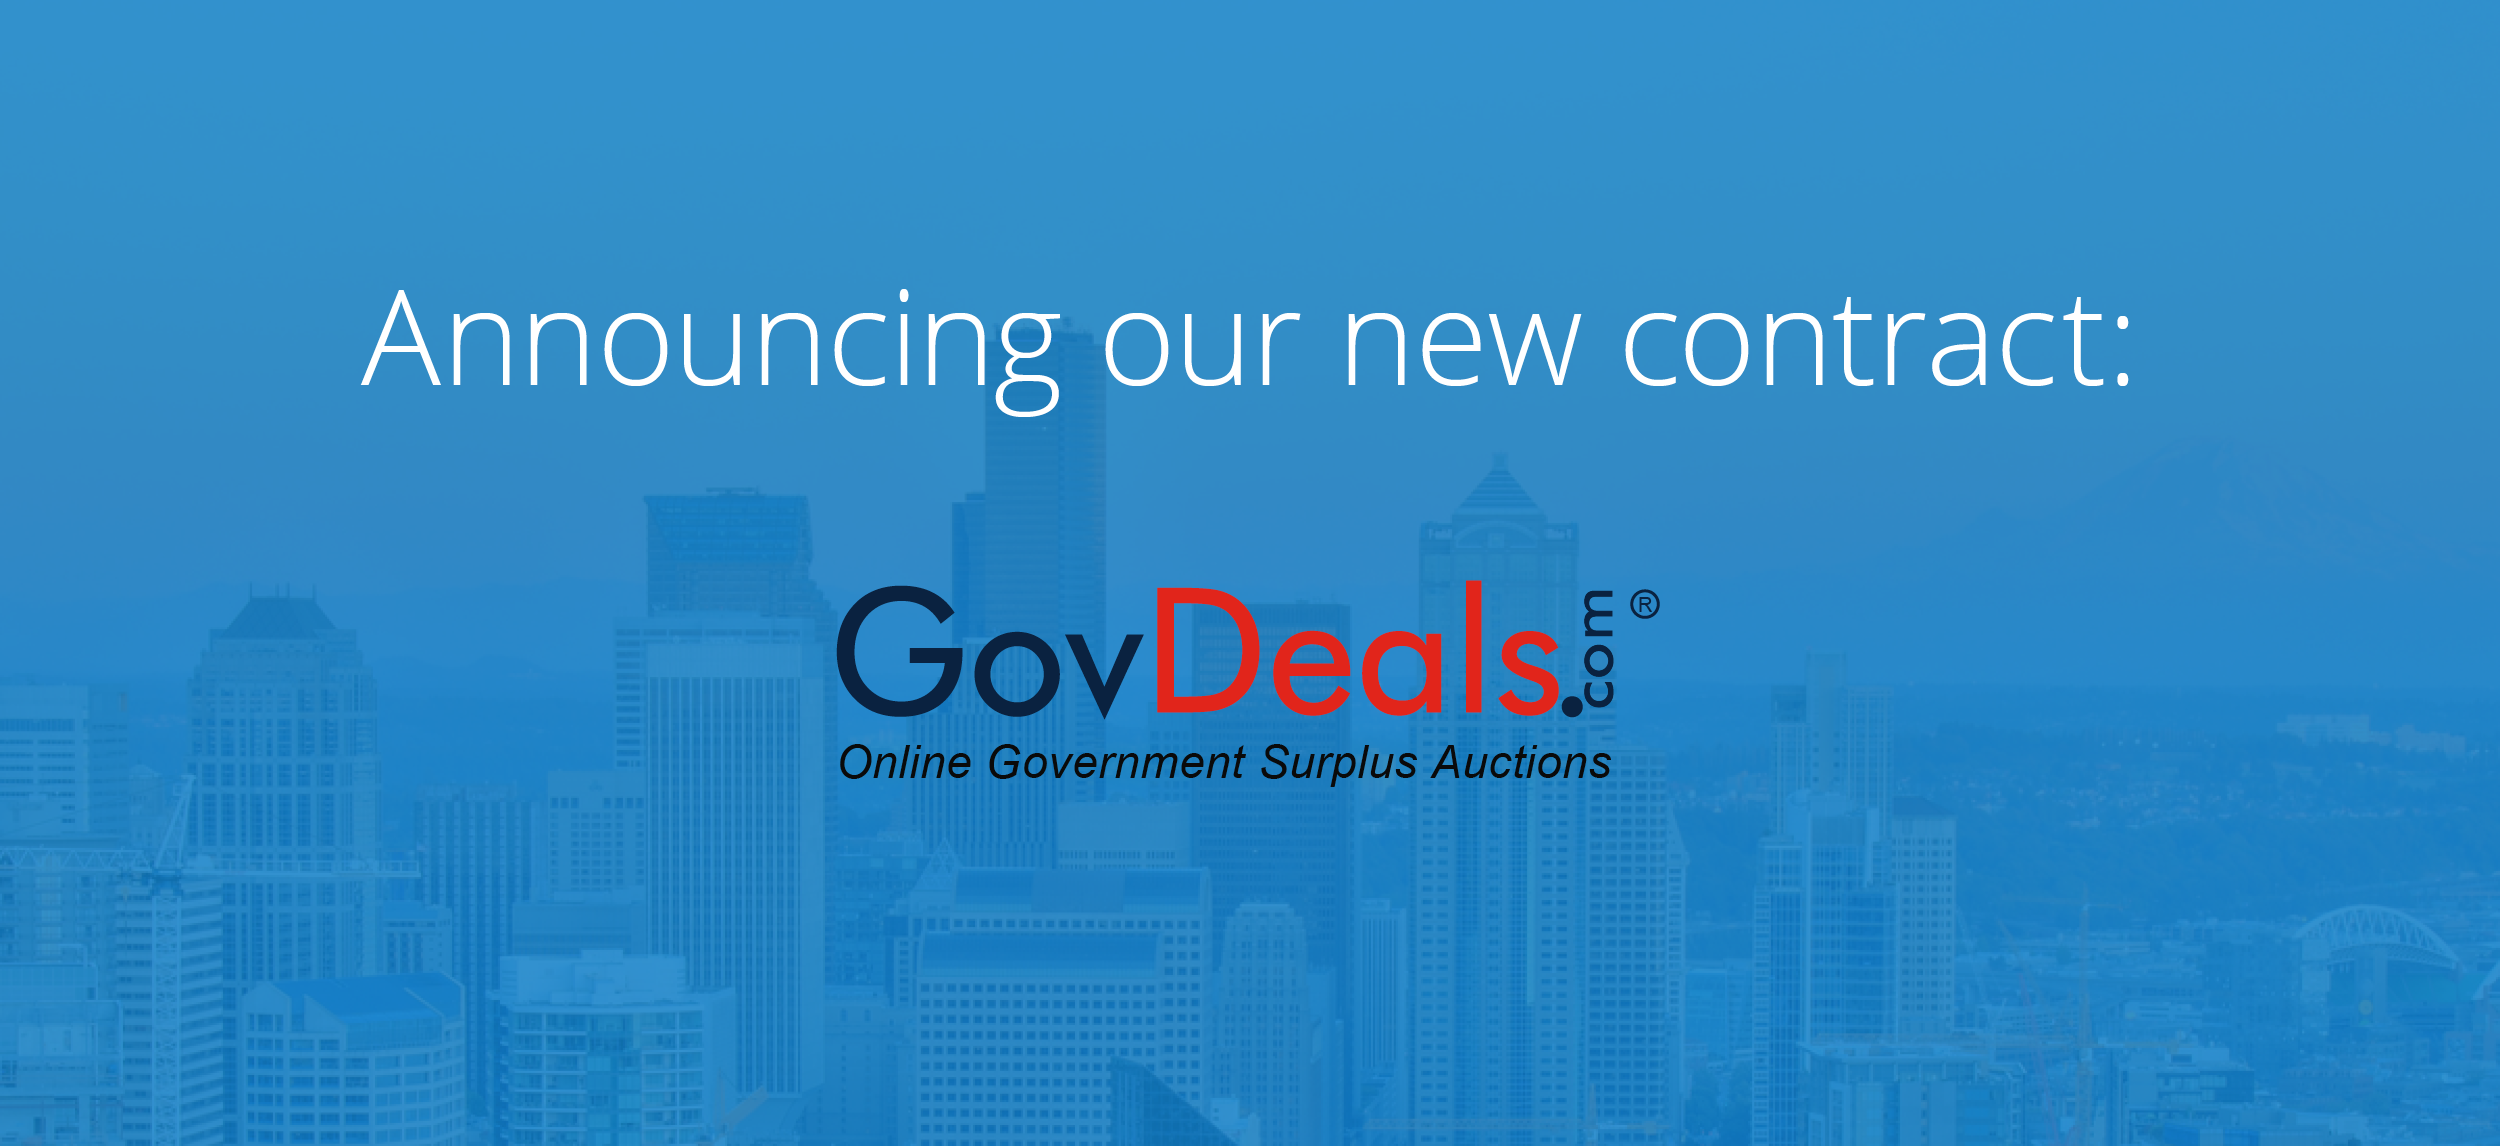 Announcing GovDeals, Inc: Our Newest Contract